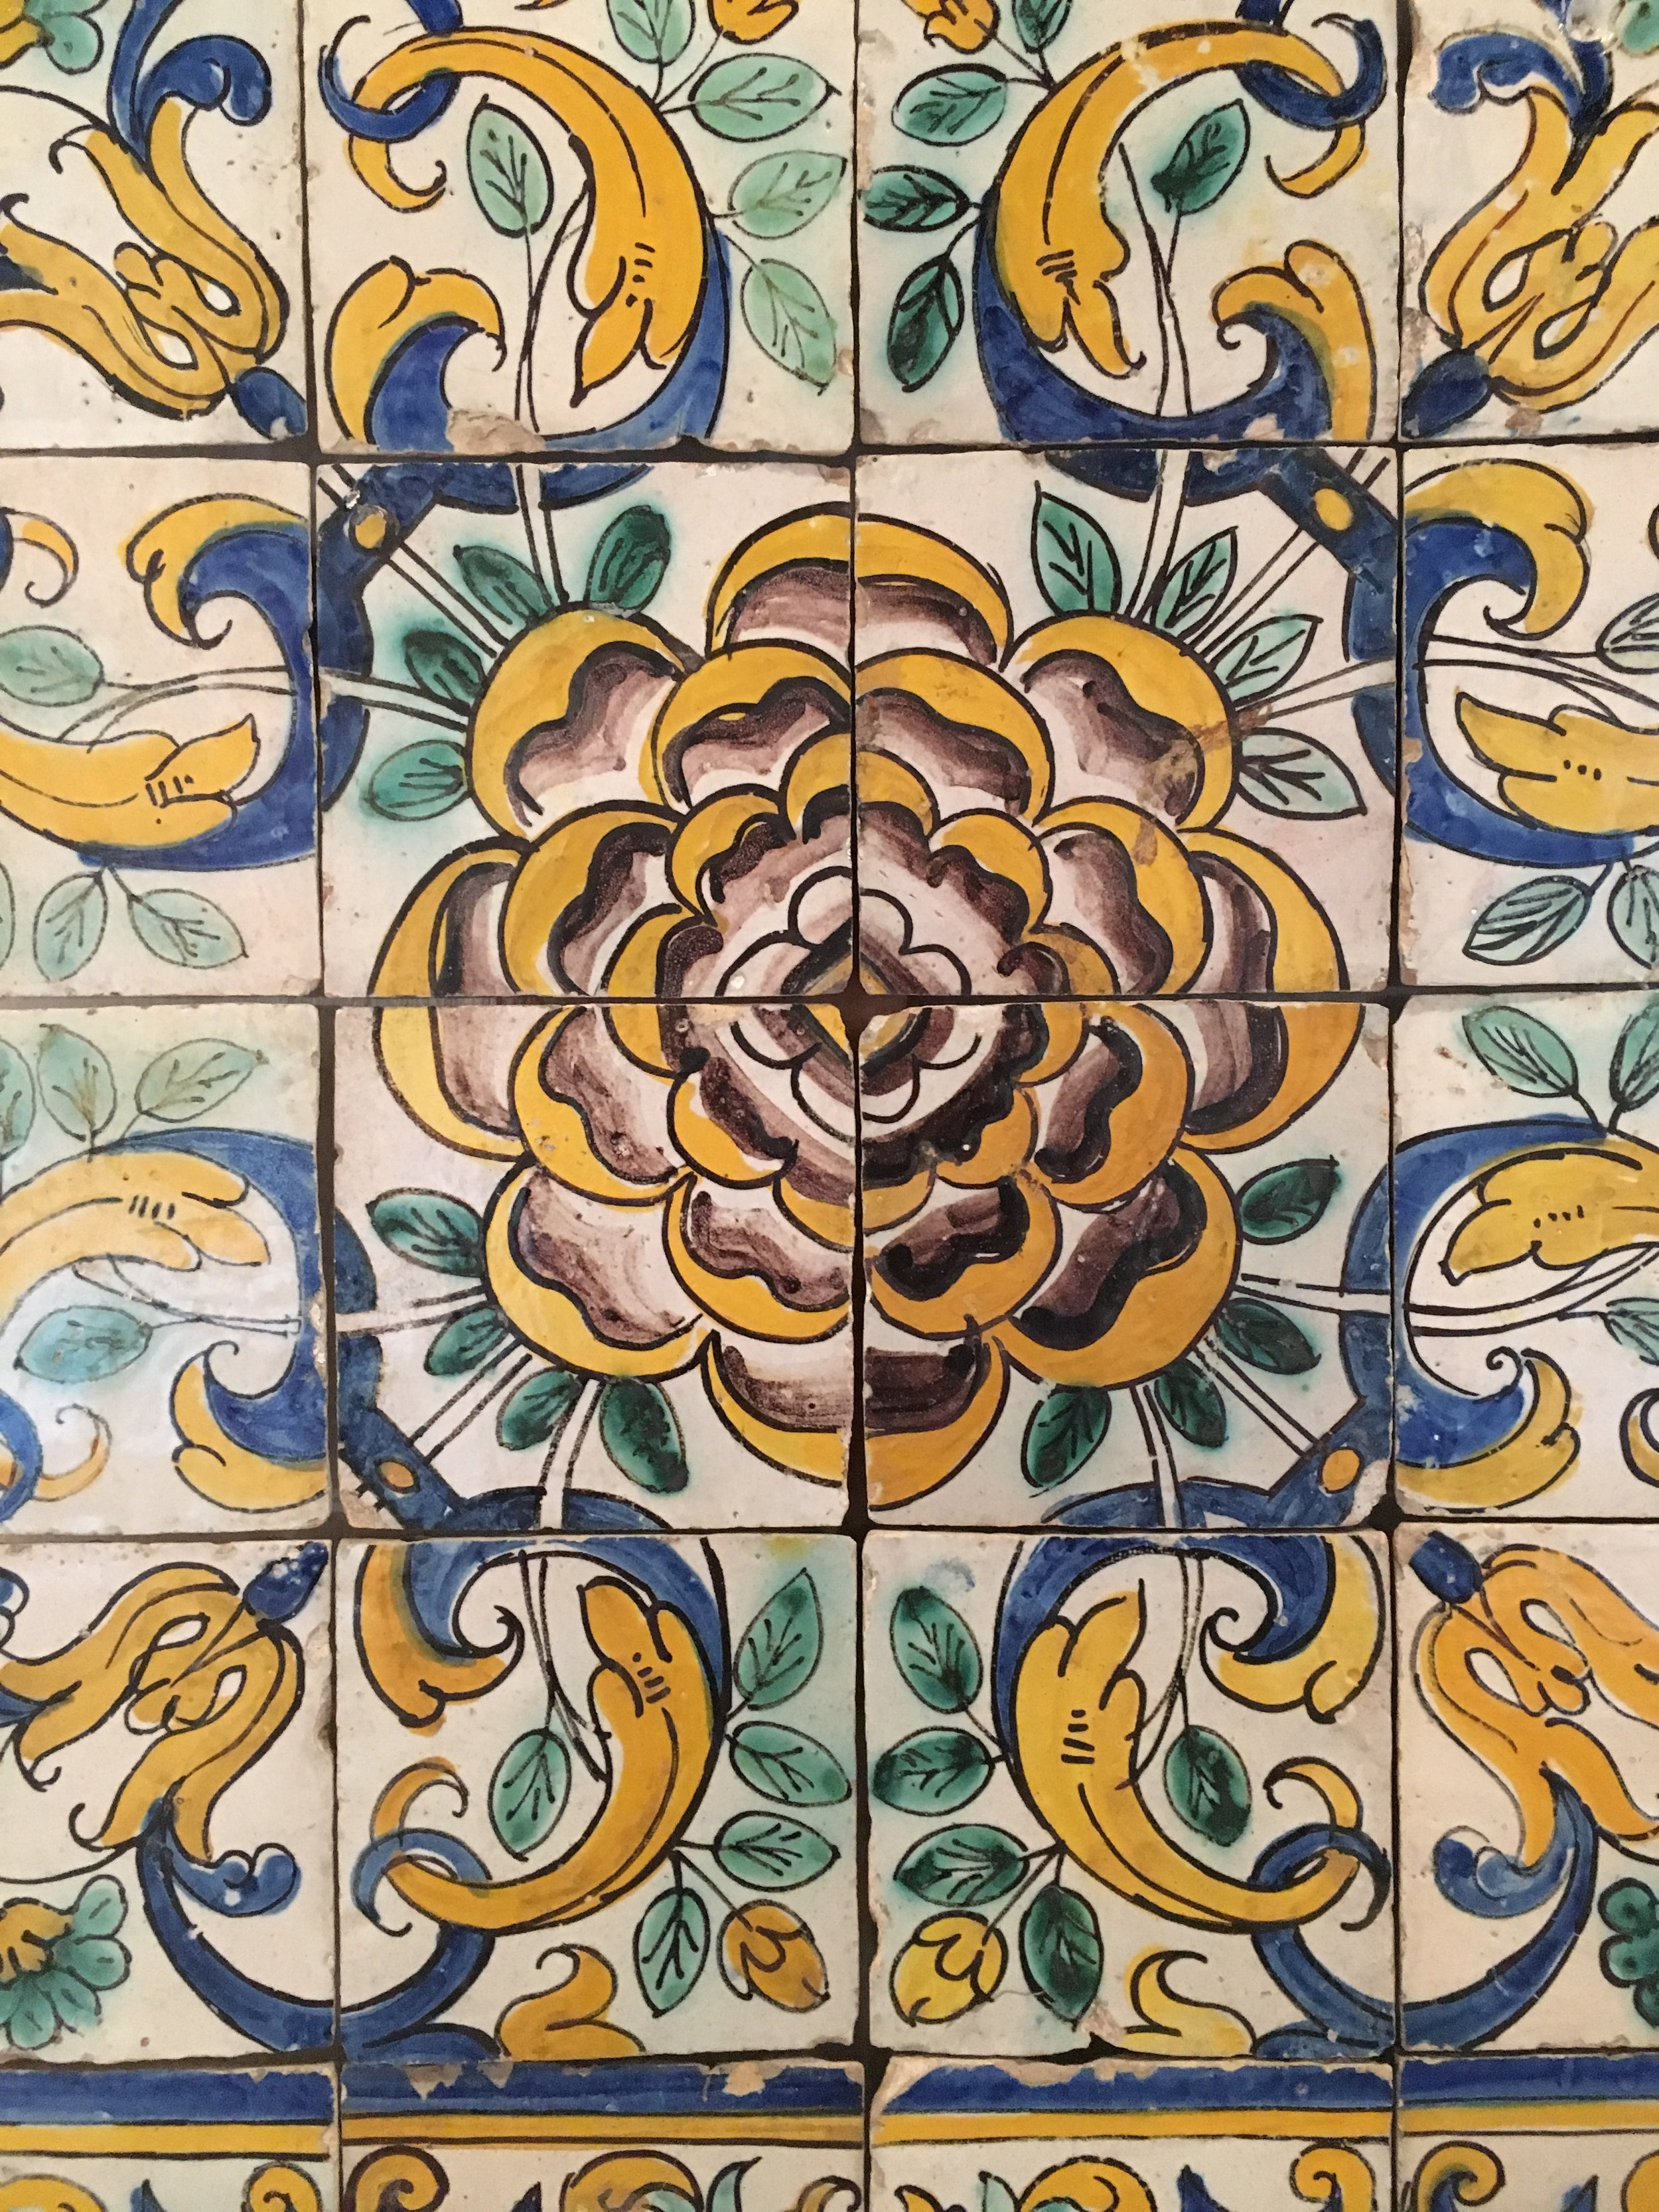 Camellias were a new source of inspiration as Far Eastern flora became known. This Camellia pattern panel of tiles, ca. 1660-1680, was created in polychromed faience for Nossa Senhora da Esperança, Lisboa. (photography J. Cook)